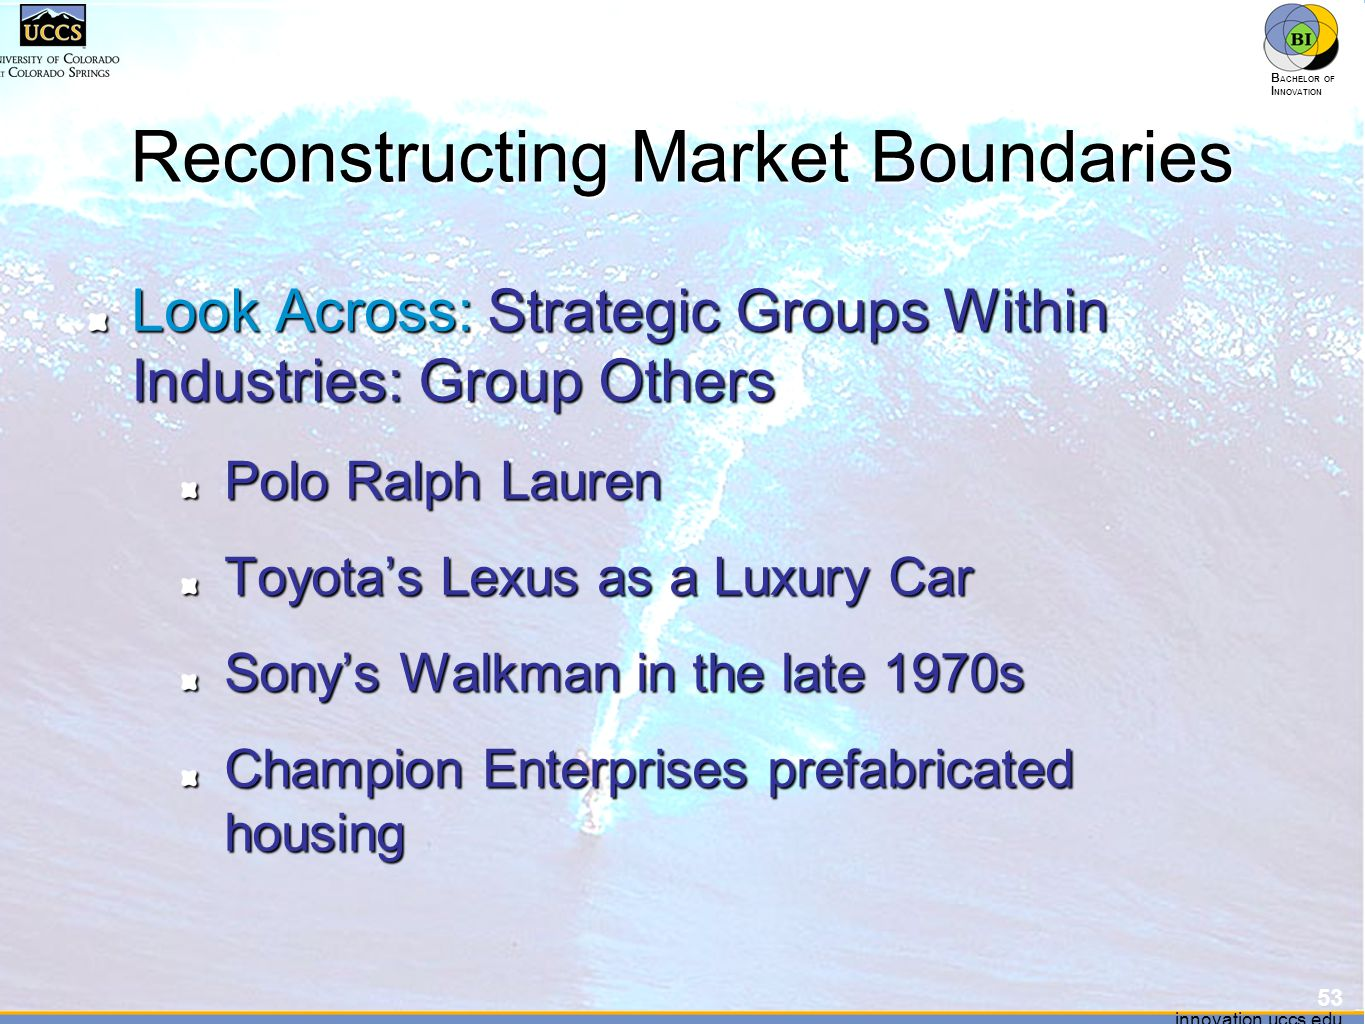 innovation.uccs.edu B ACHELOR OF I NNOVATION ™ innovation.uccs.edu B ACHELOR OF I NNOVATION ™ Reconstructing Market Boundaries Look Across: Strategic Groups Within Industries: Group Others Polo Ralph Lauren Toyota's Lexus as a Luxury Car Sony's Walkman in the late 1970s Champion Enterprises prefabricated housing 53